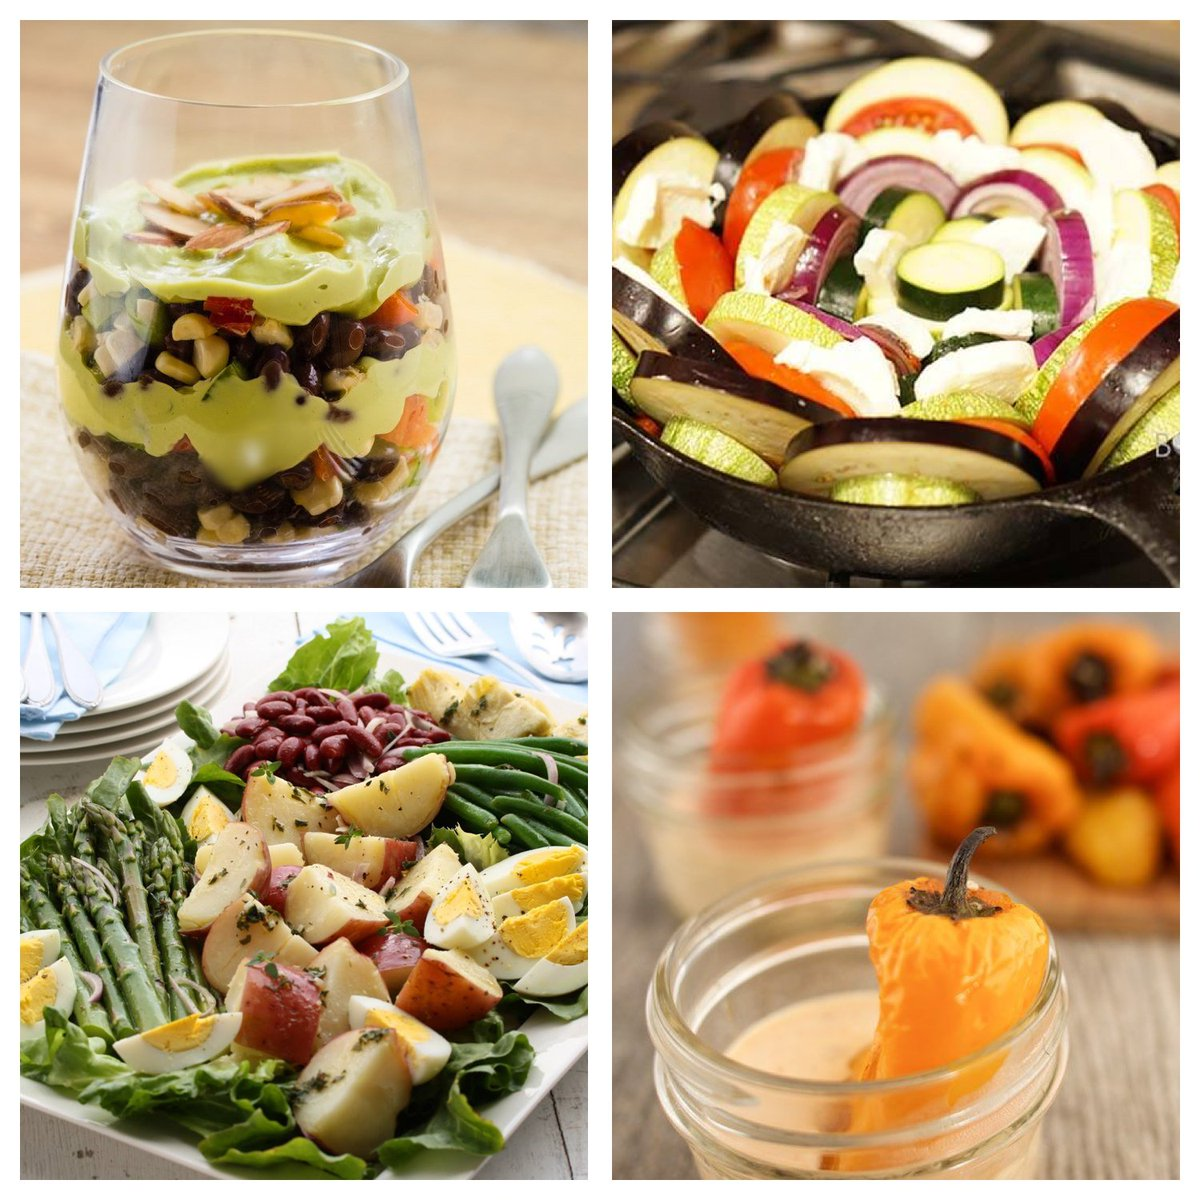 24 Delicious Ways to Sneak In More Veggies  http:// bit.ly/2vMcL73  &nbsp;   #recipes #fitfam #fitchick #HealthyEating #FitFluential #veggies <br>http://pic.twitter.com/bNqi4xyxF3